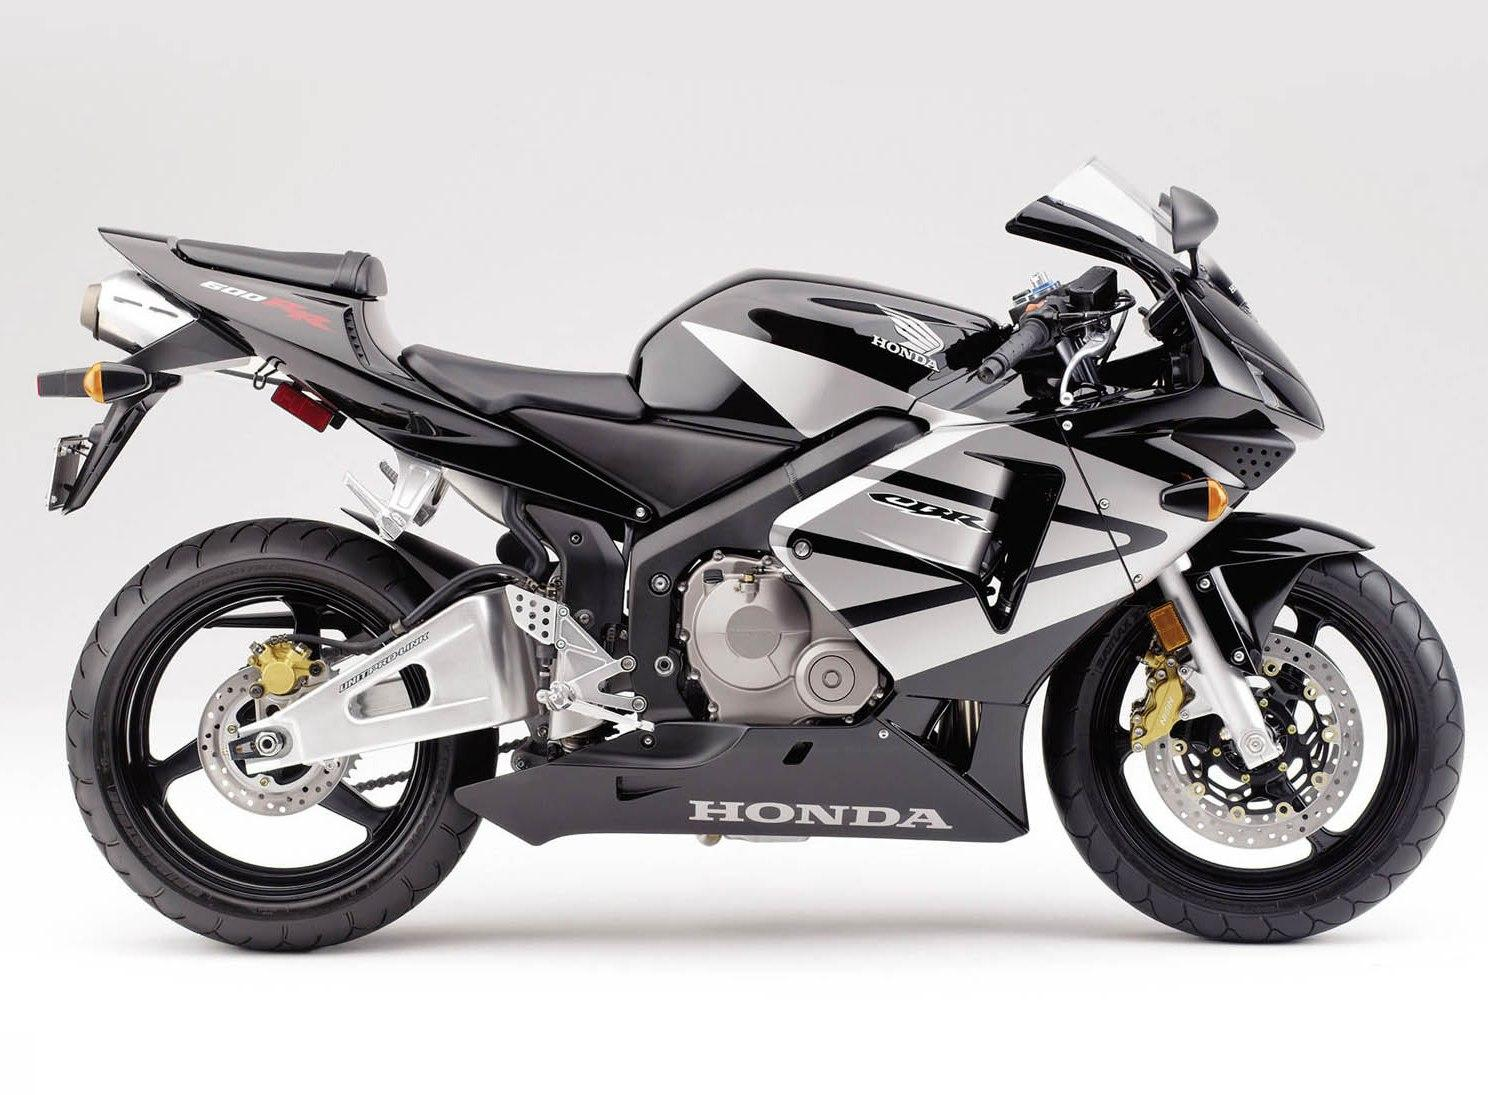 honda cbr 600rr the bikes gallery. Black Bedroom Furniture Sets. Home Design Ideas